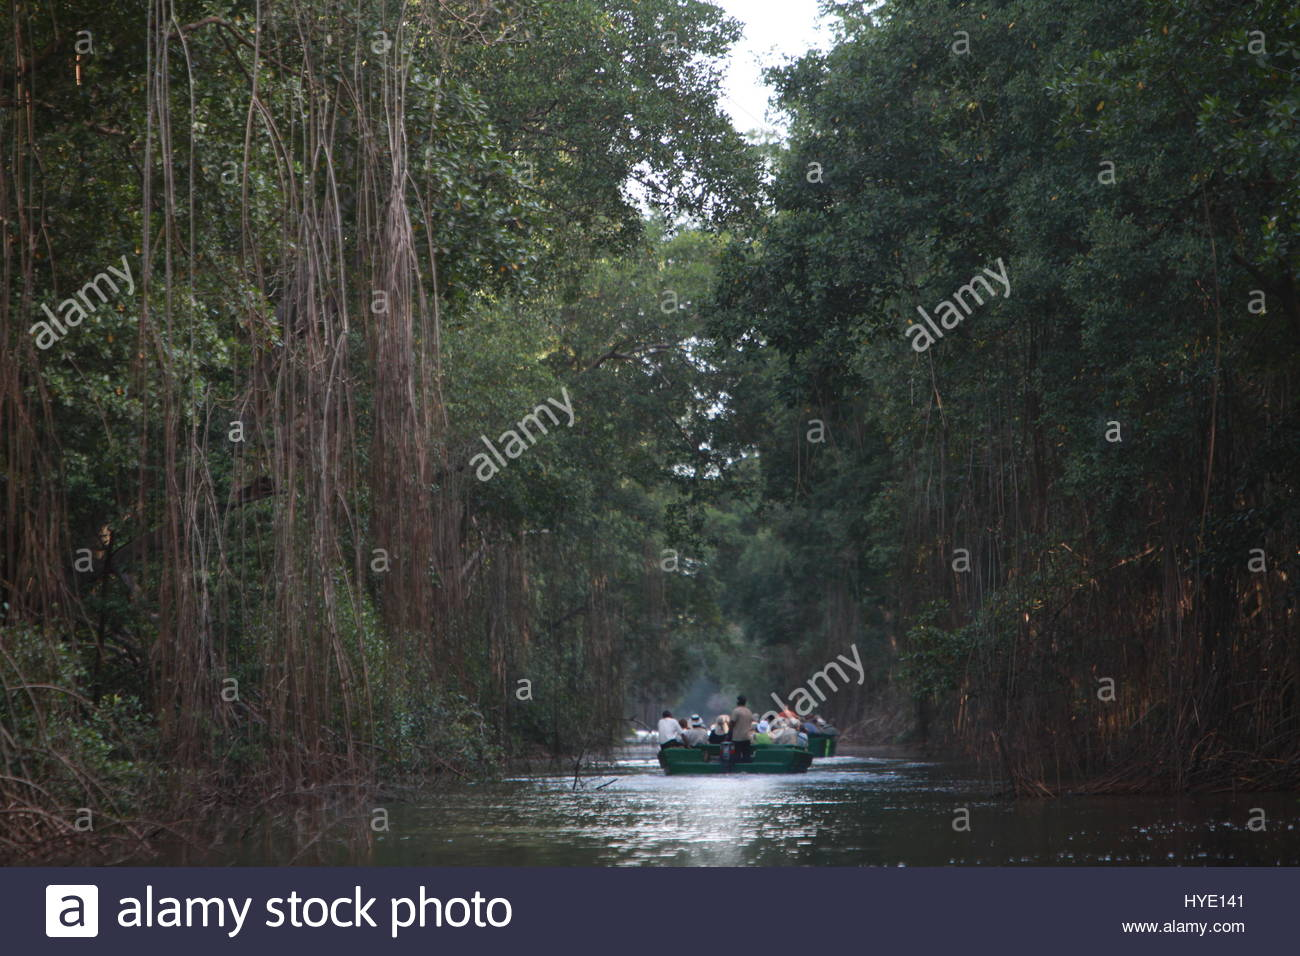 The Caroni Swamp, a designated wildlife sanctuary located at the mouth of the Caroni River. - Stock Image